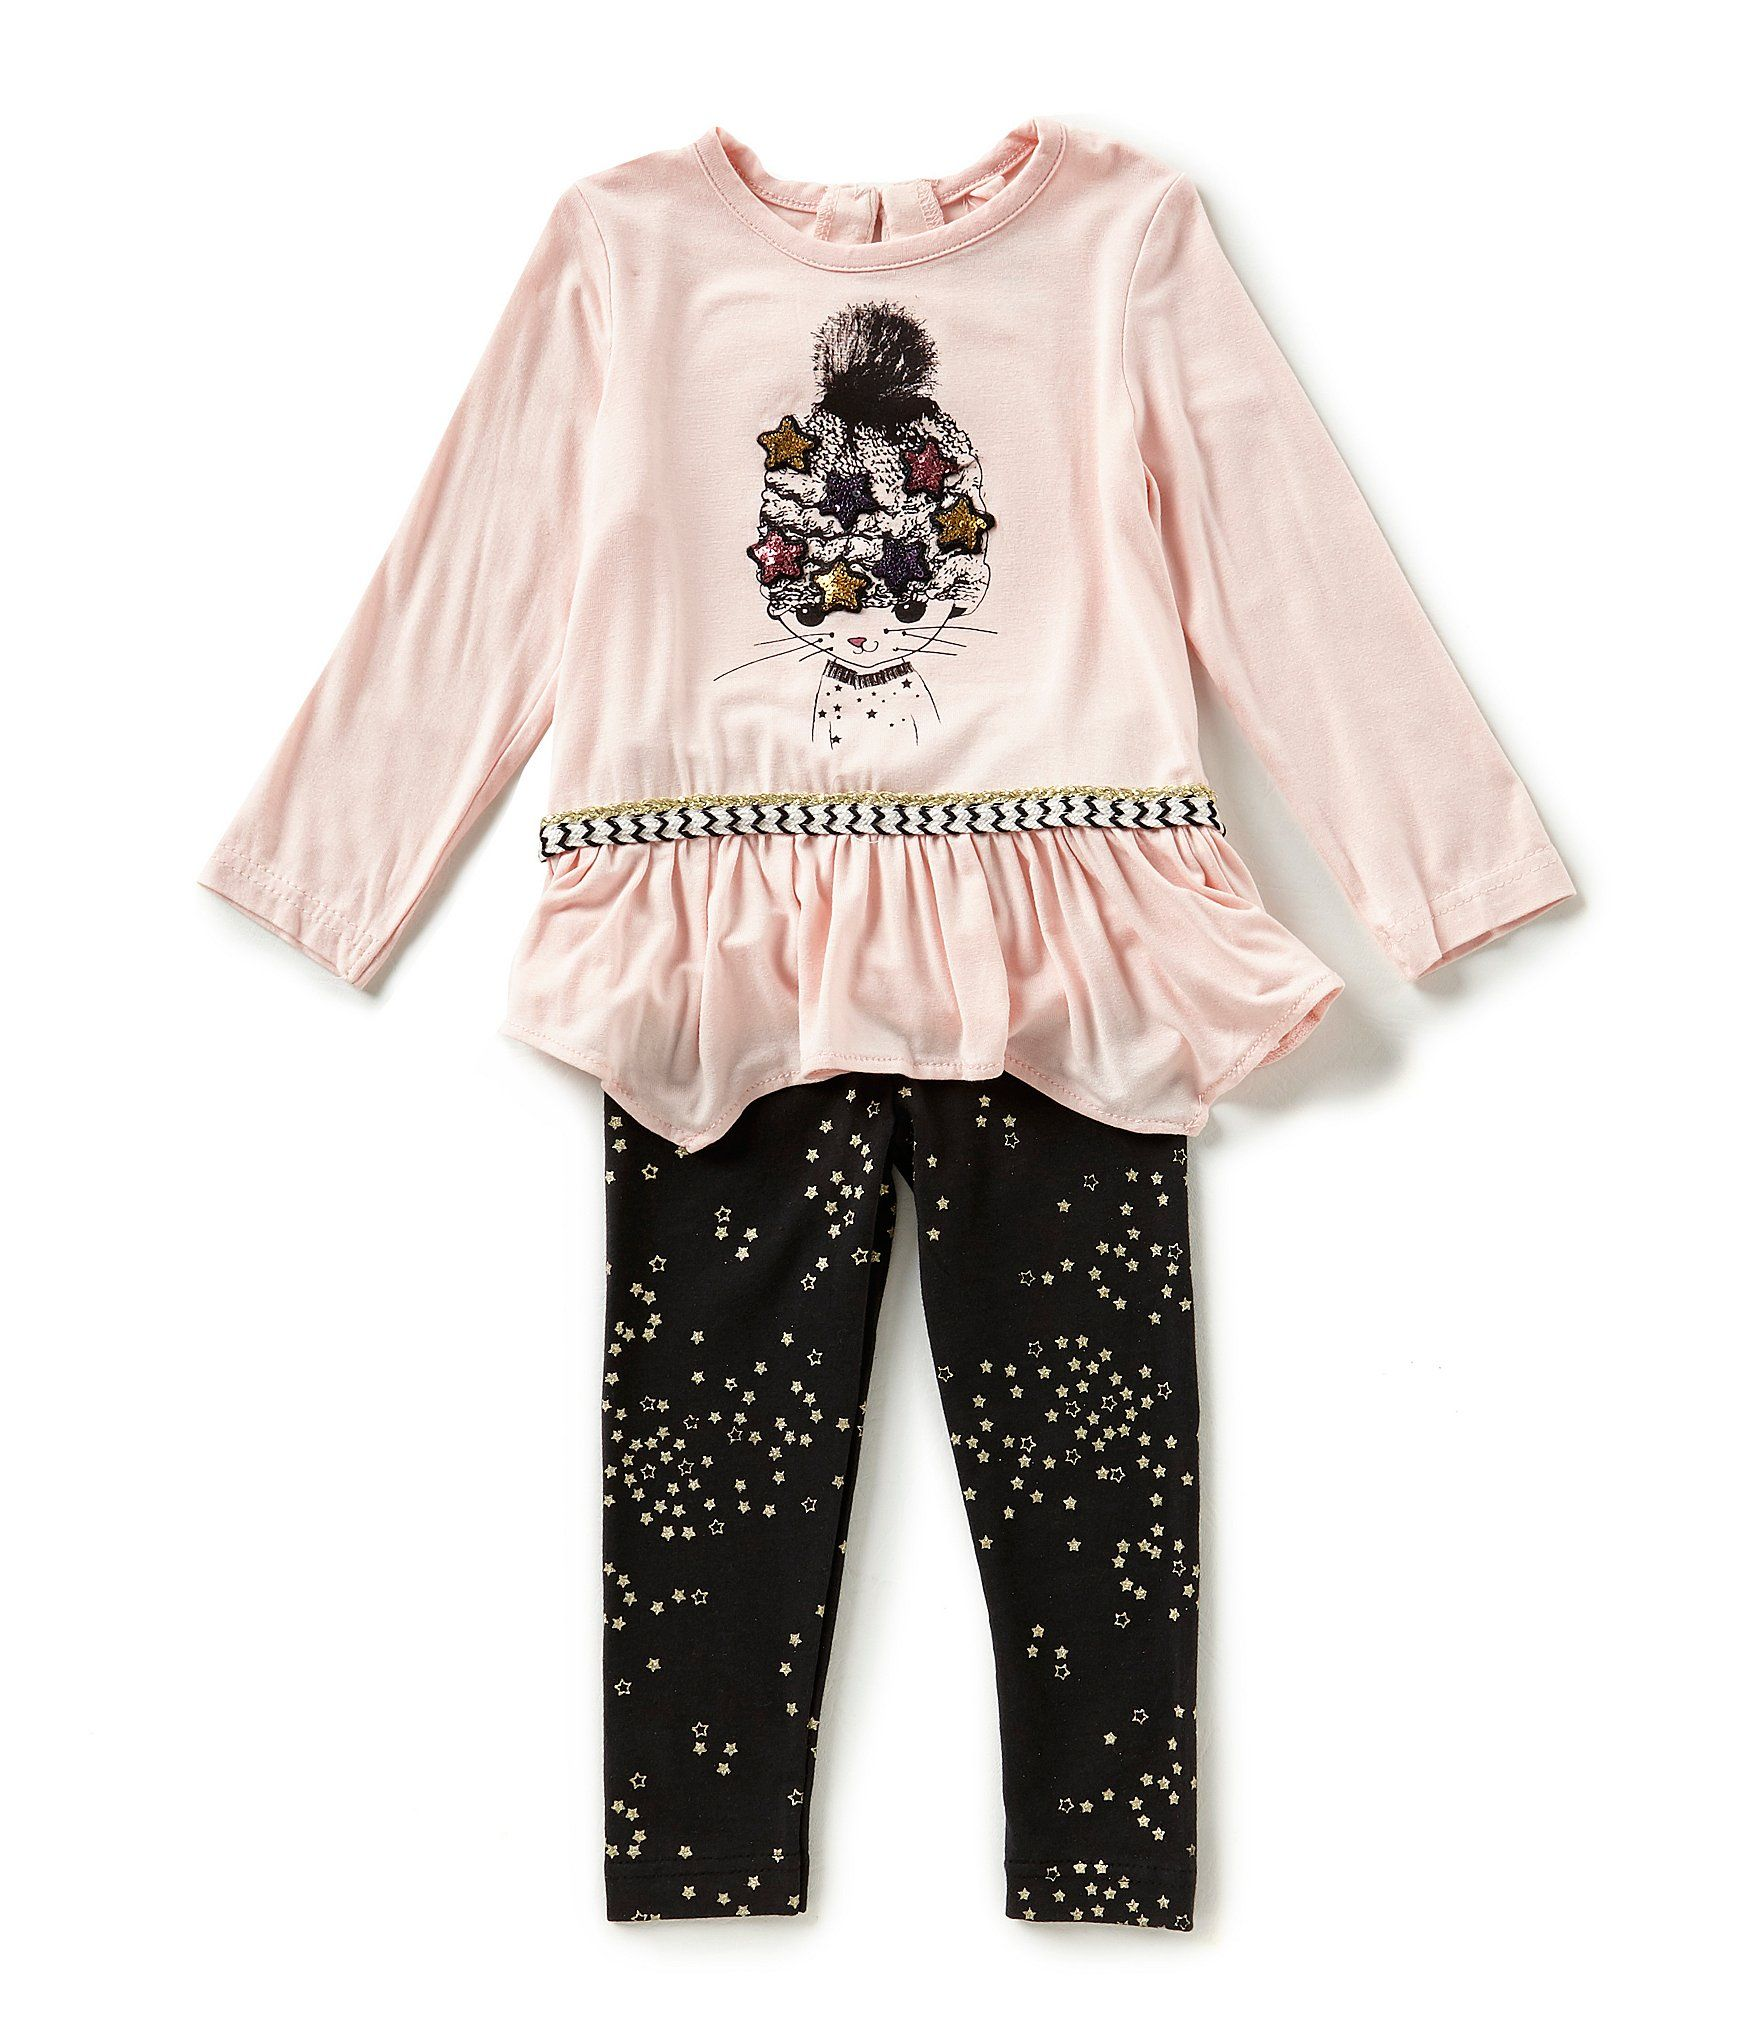 Jessica Simpson Baby Girls 12 24 Months Cat Long Sleeve Top